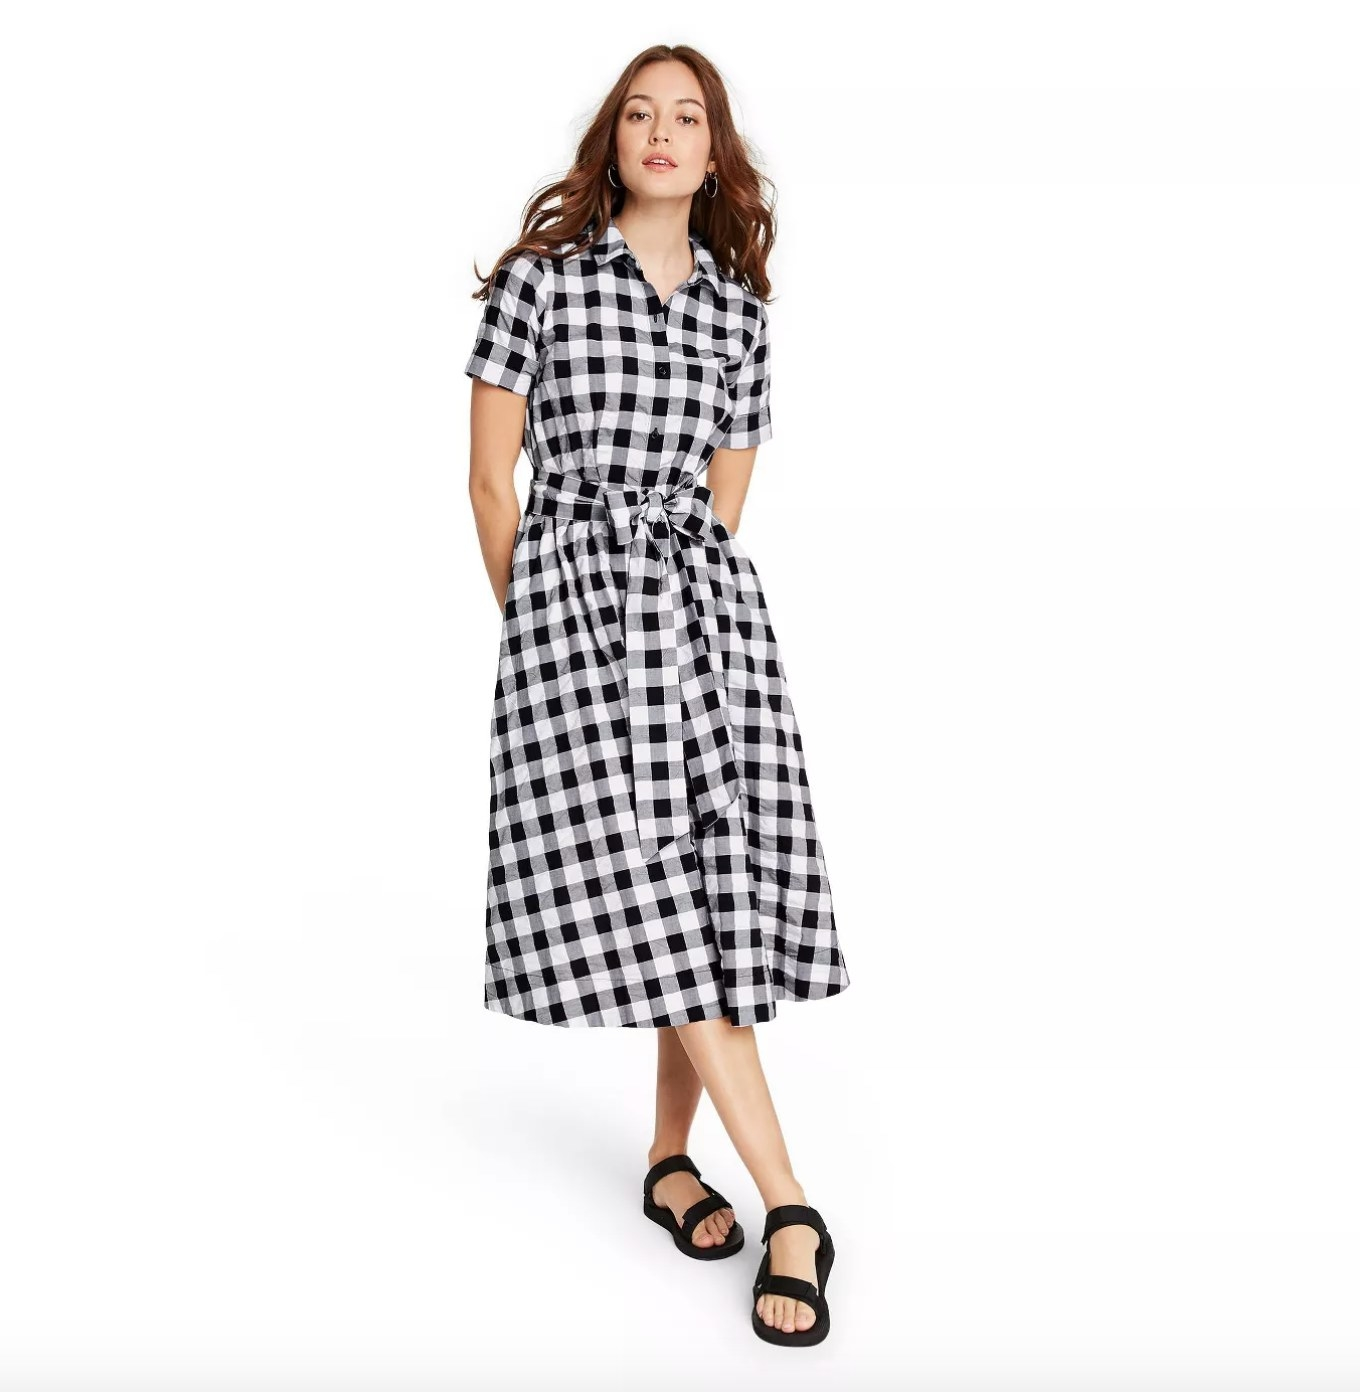 Model wearing the black and white gingham shirtdress